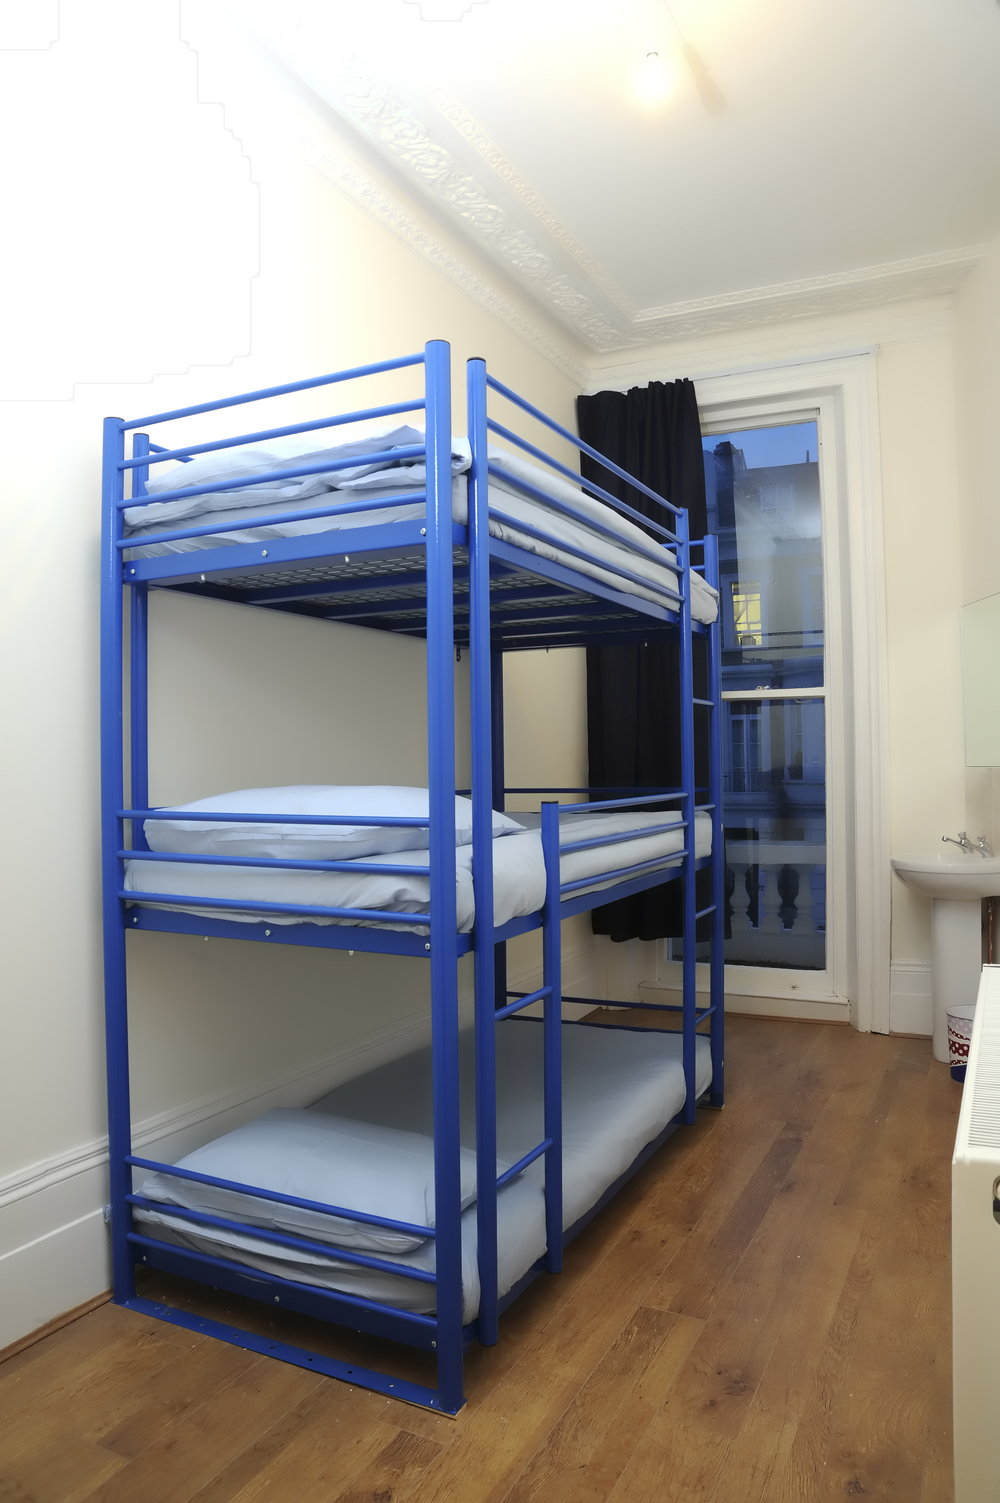 triple-hostel-bunk-beds.jpg